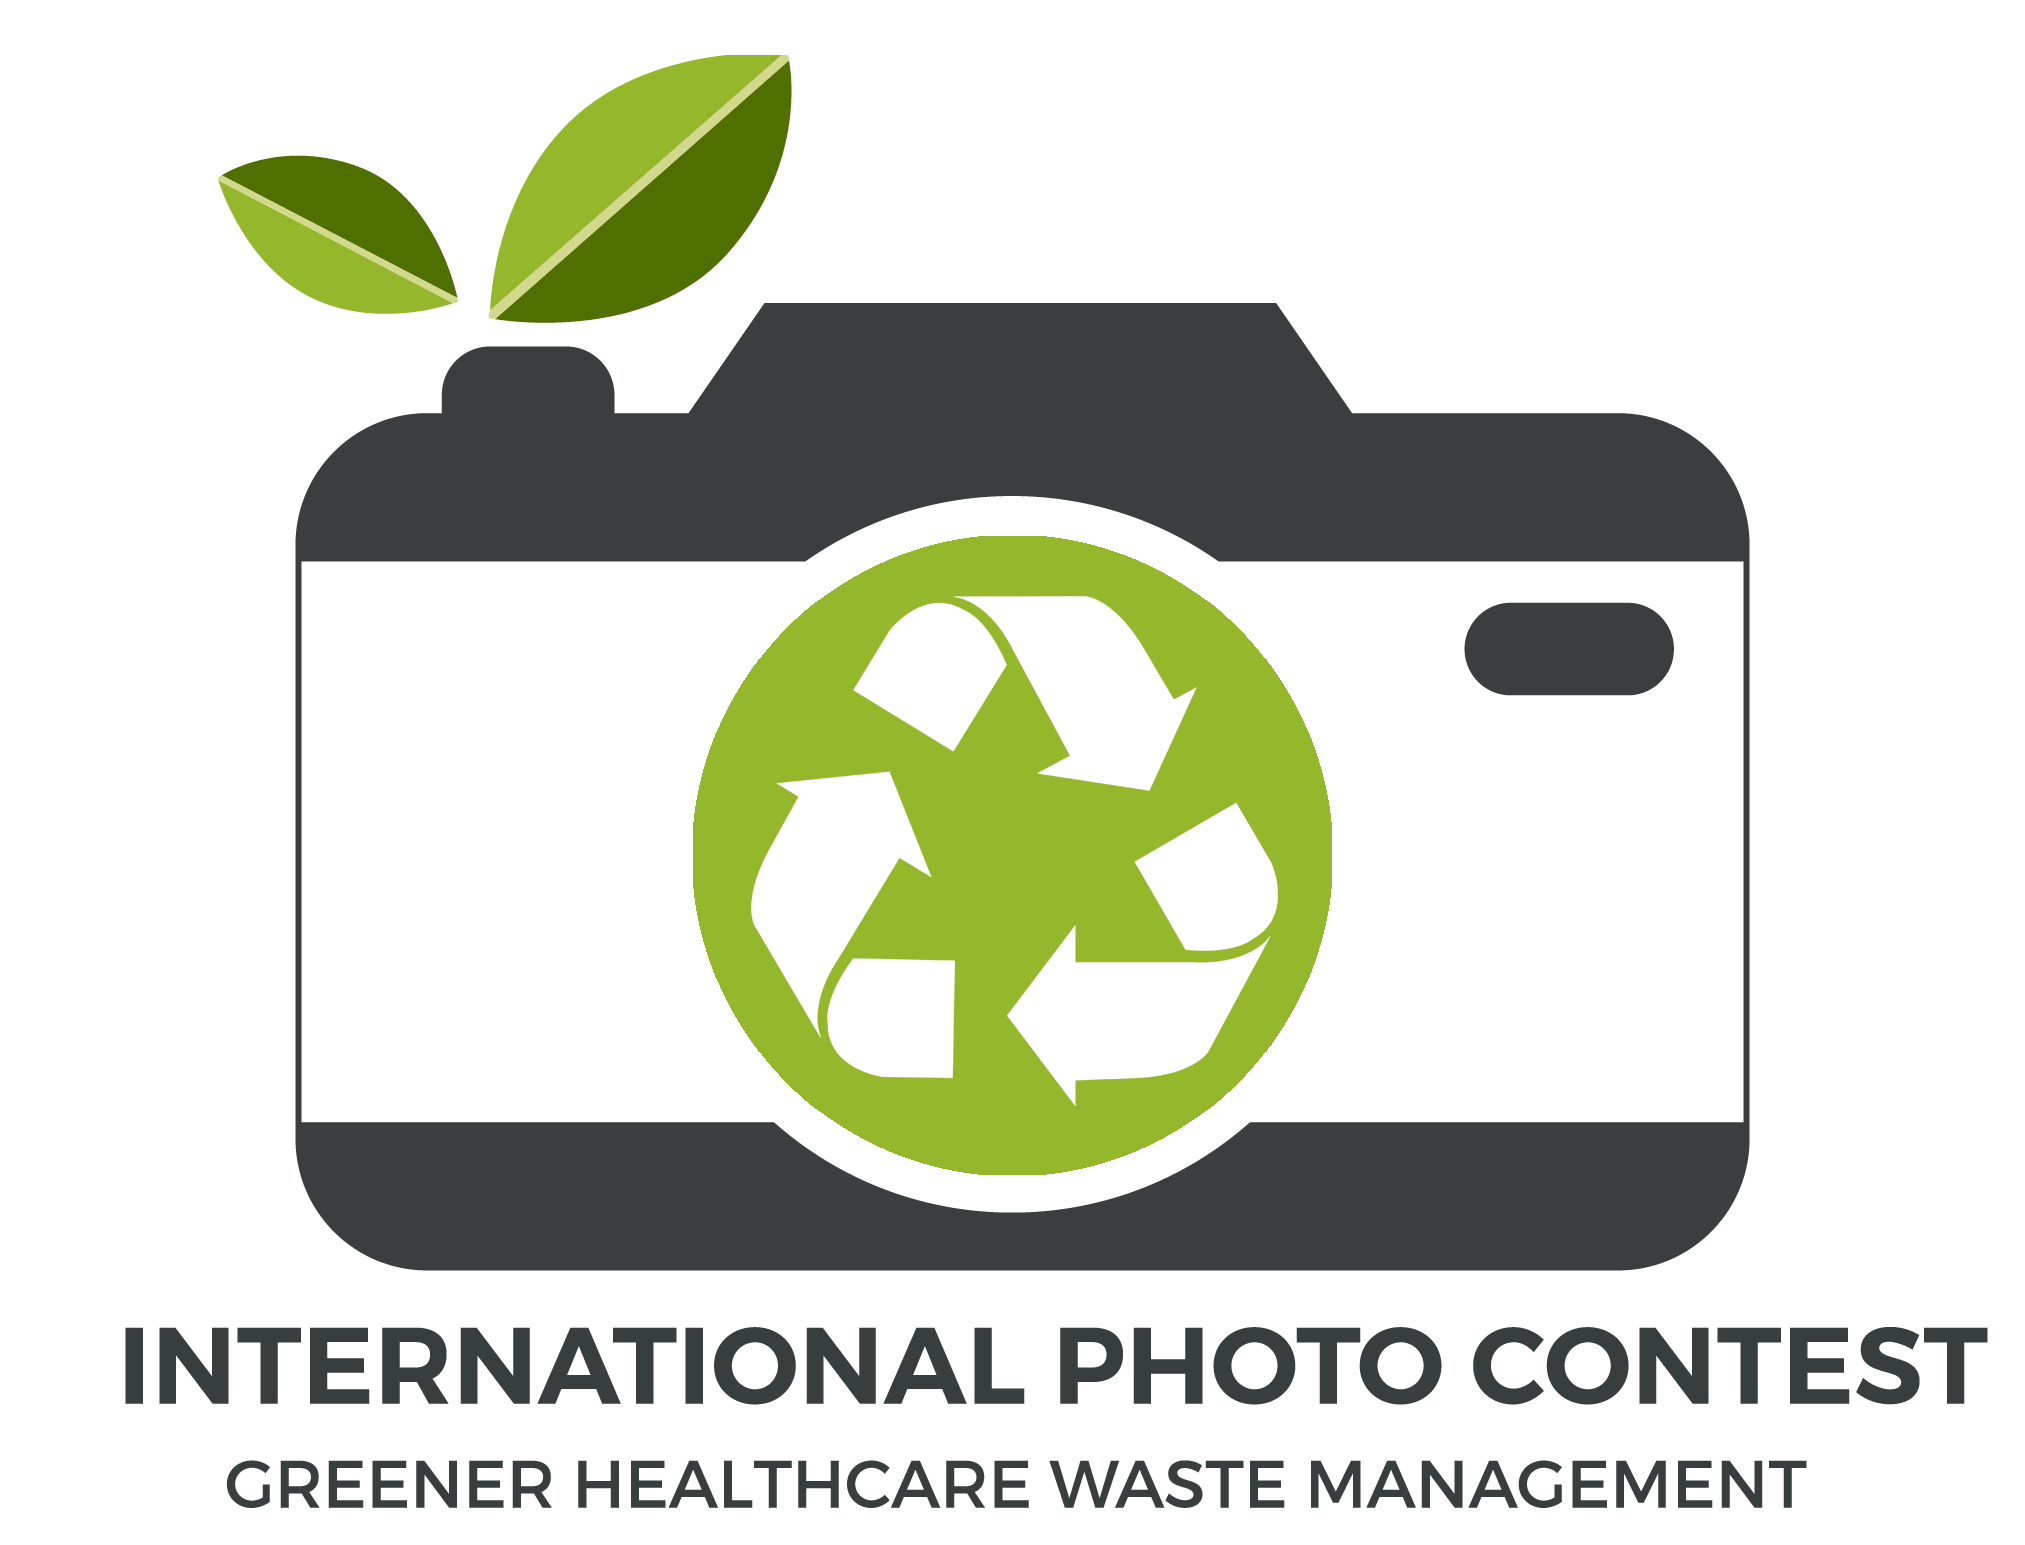 International Photo Contest on Greener Healthcare Waste Management 2019